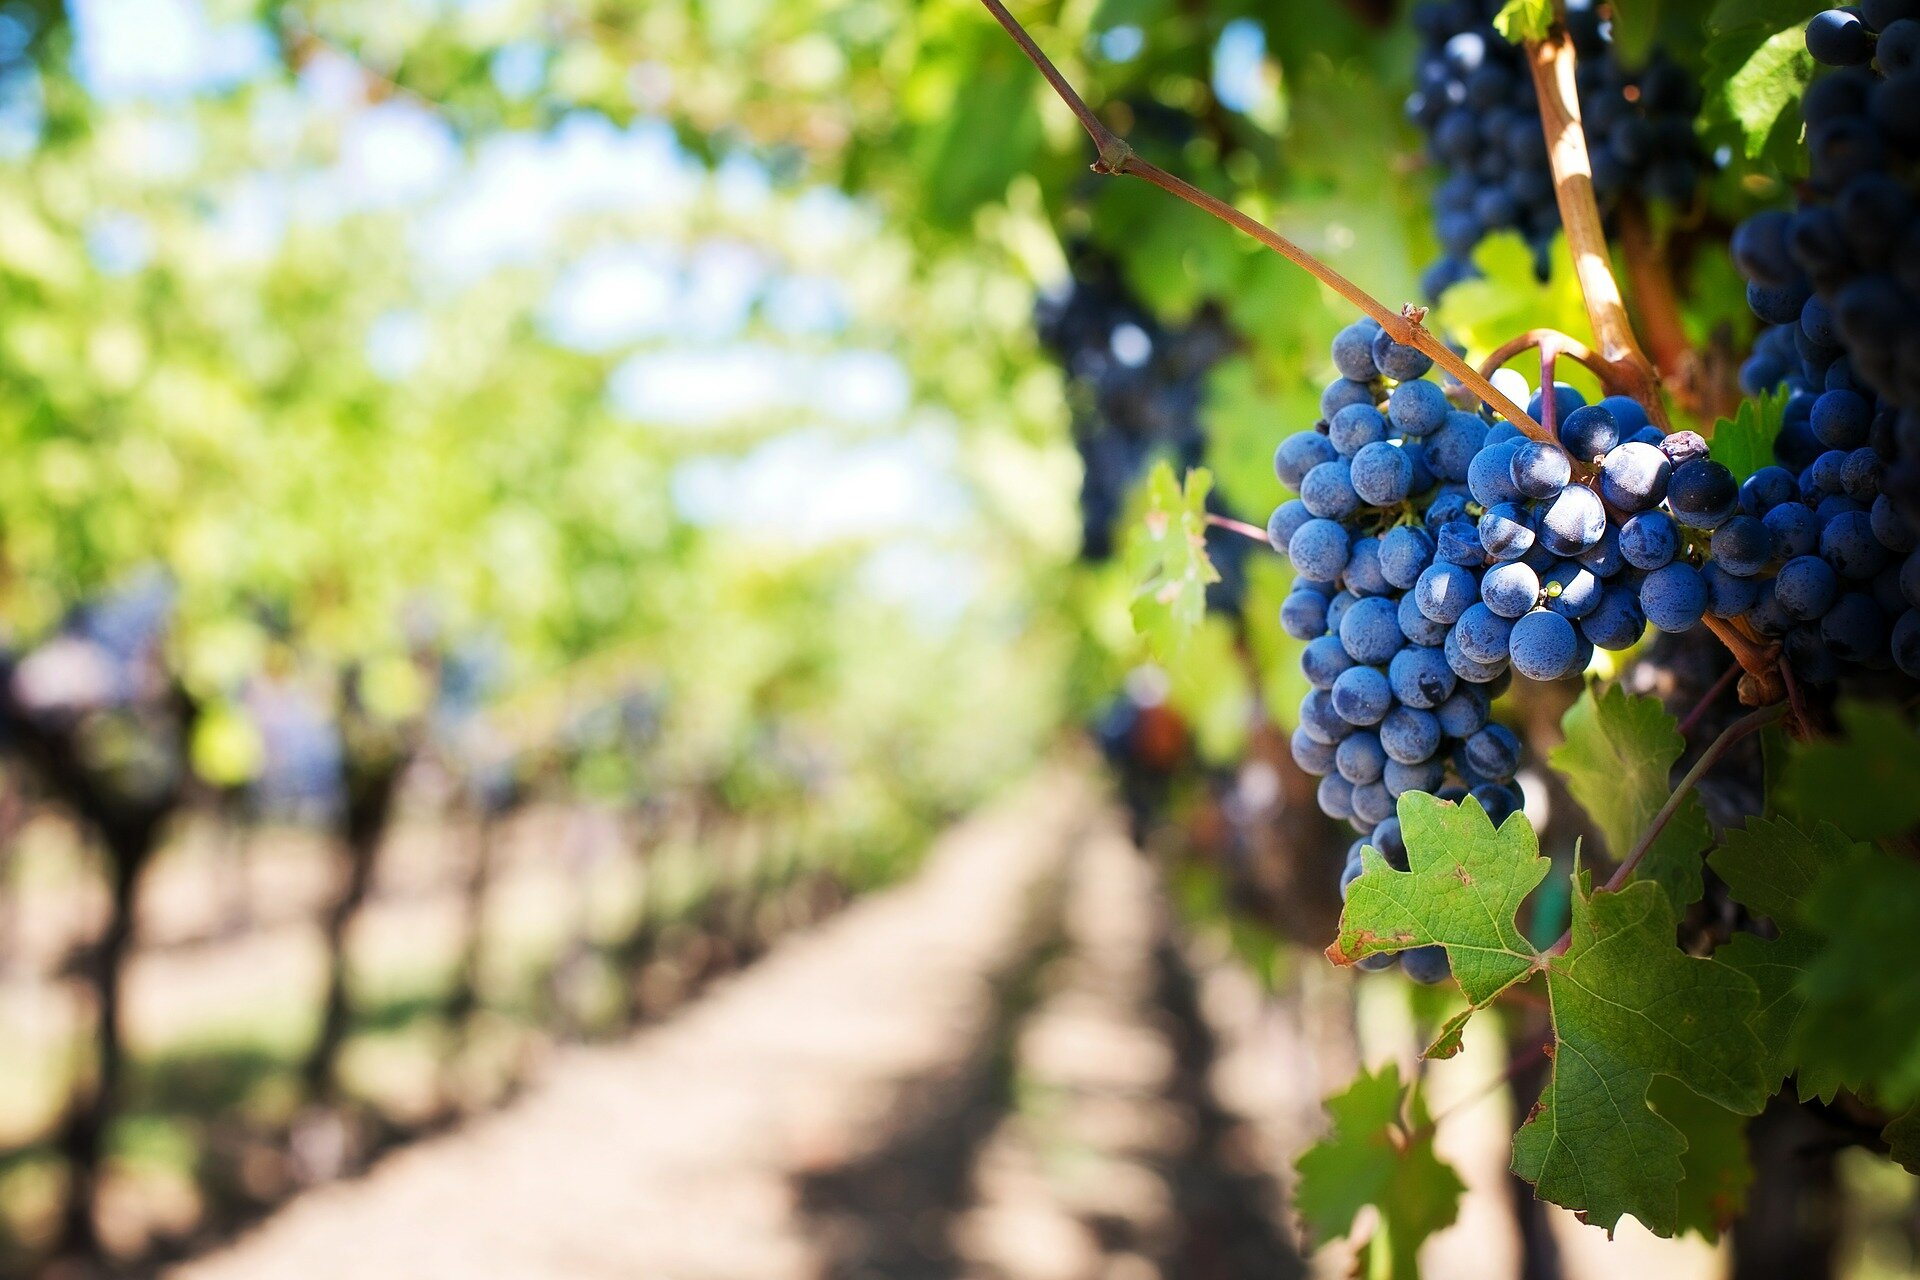 Moldova is famous for its wine